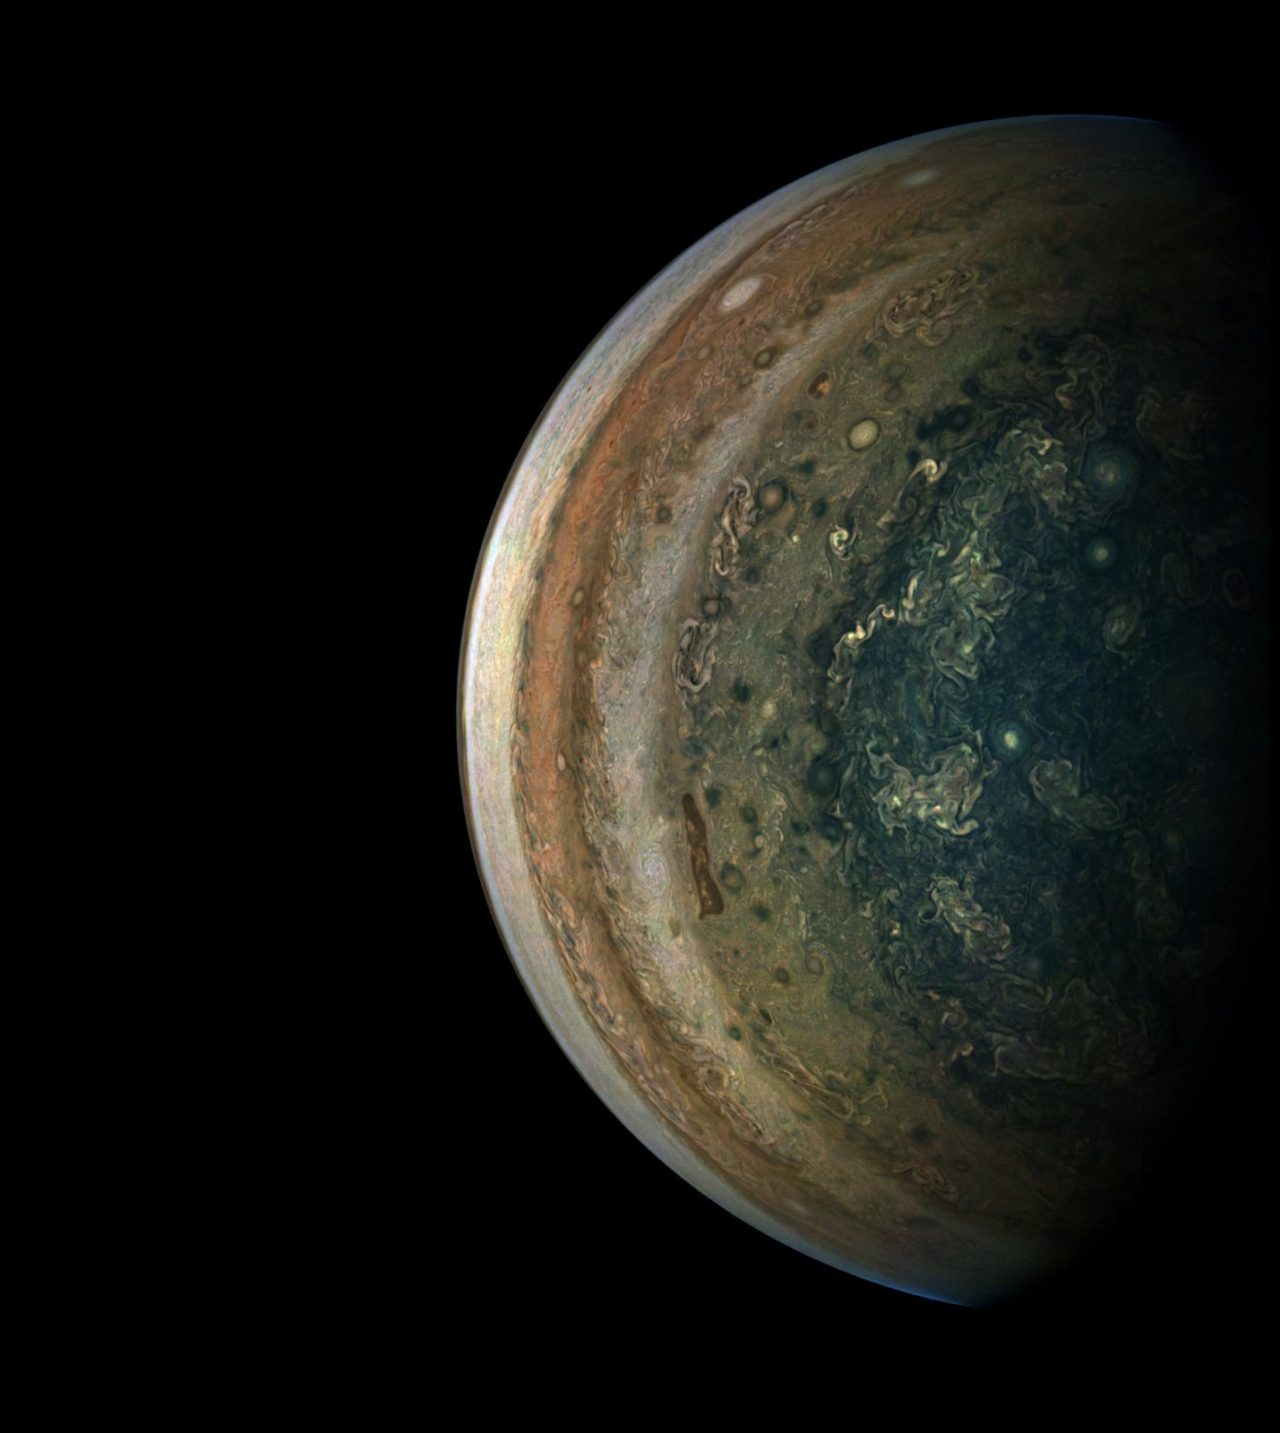 In the final minutes of a recent close flyby of Jupiter, NASA's Juno spacecraft captured a departing view of the planet's swirling southern hemisphere. Image Credit: mage Credits: NASA/JPL-Caltech/SwRI/MSSS/Gerald Eichstädt